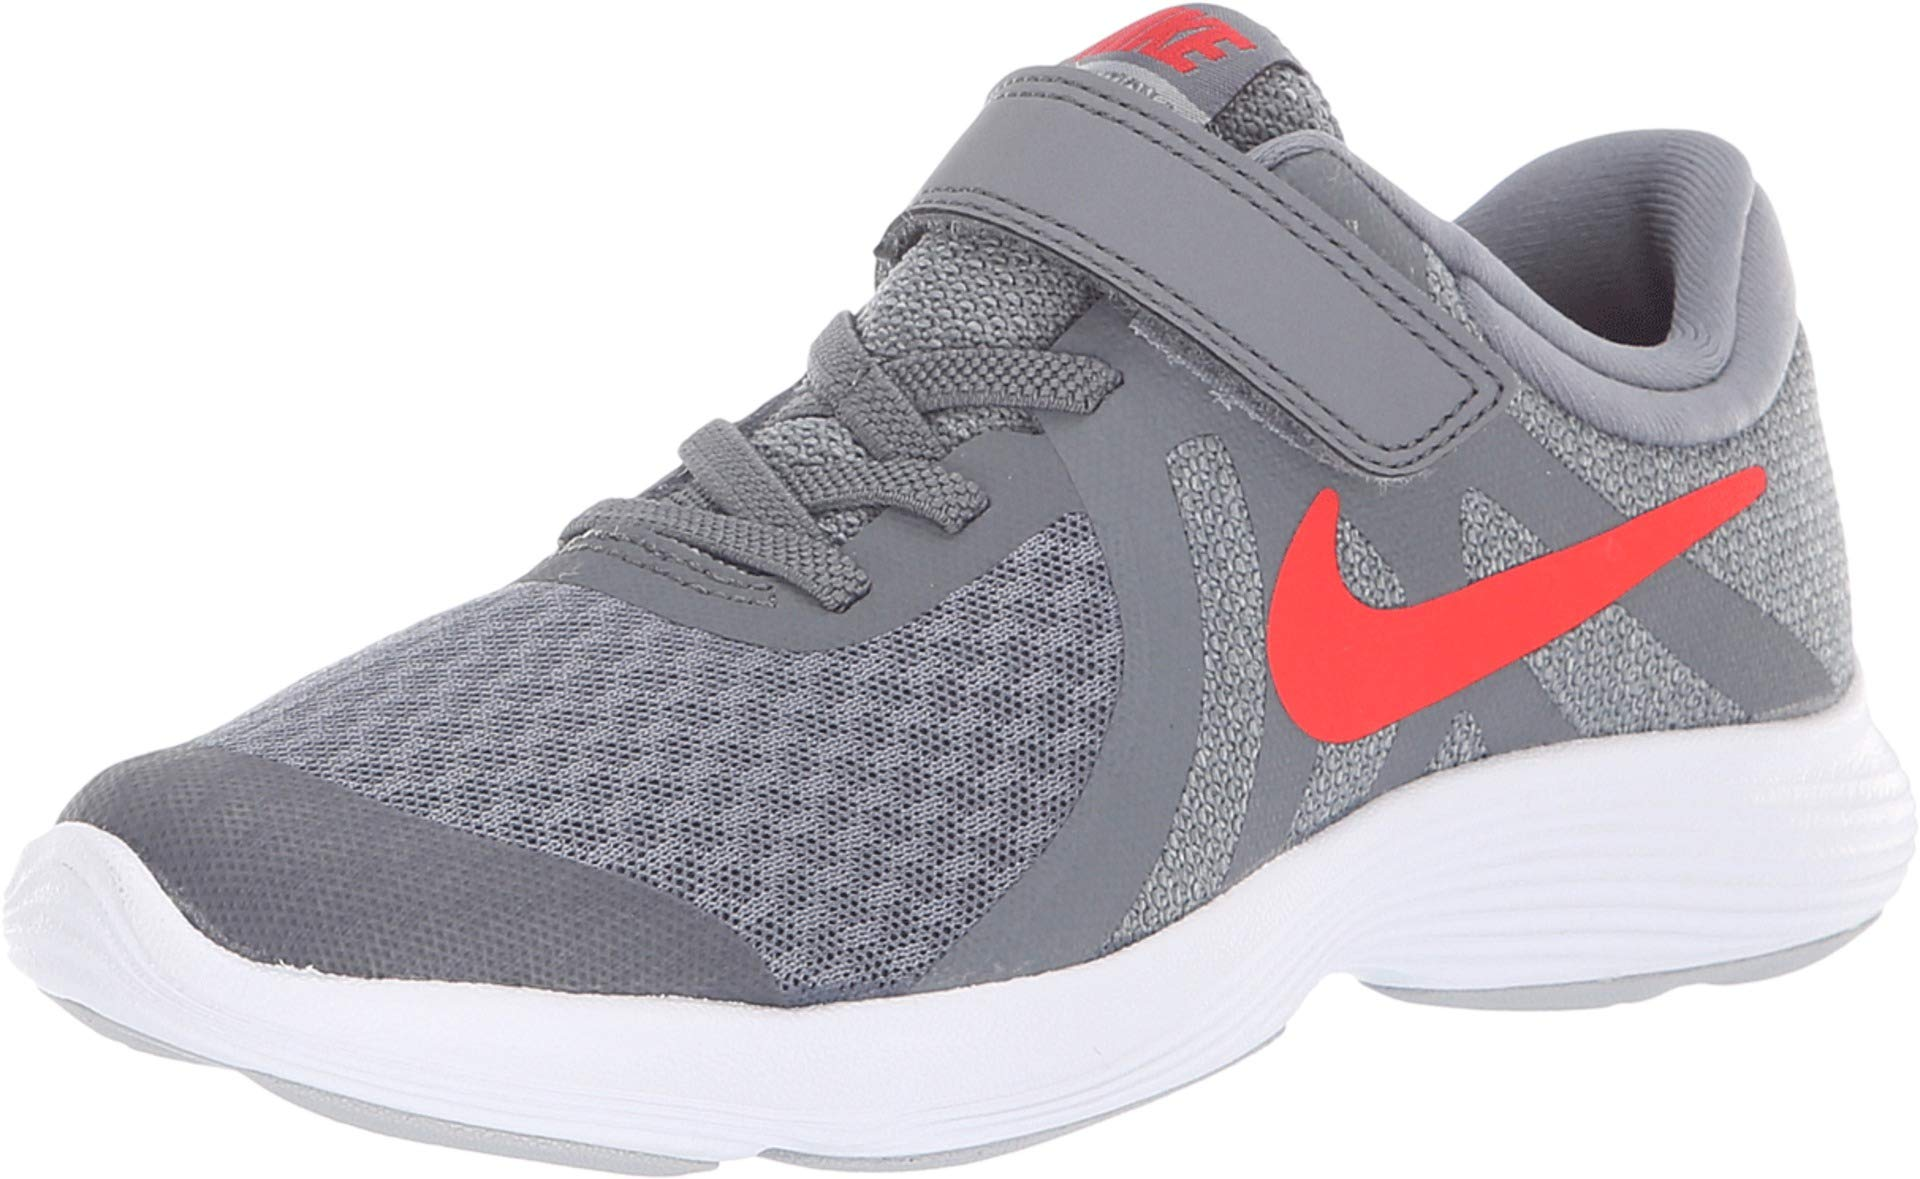 Nike Boy's Revolution 4 (PSV) Running Shoes (2.5 M Little Kid US, Cool Grey/Habanero red/Wolf Grey/White) by Nike